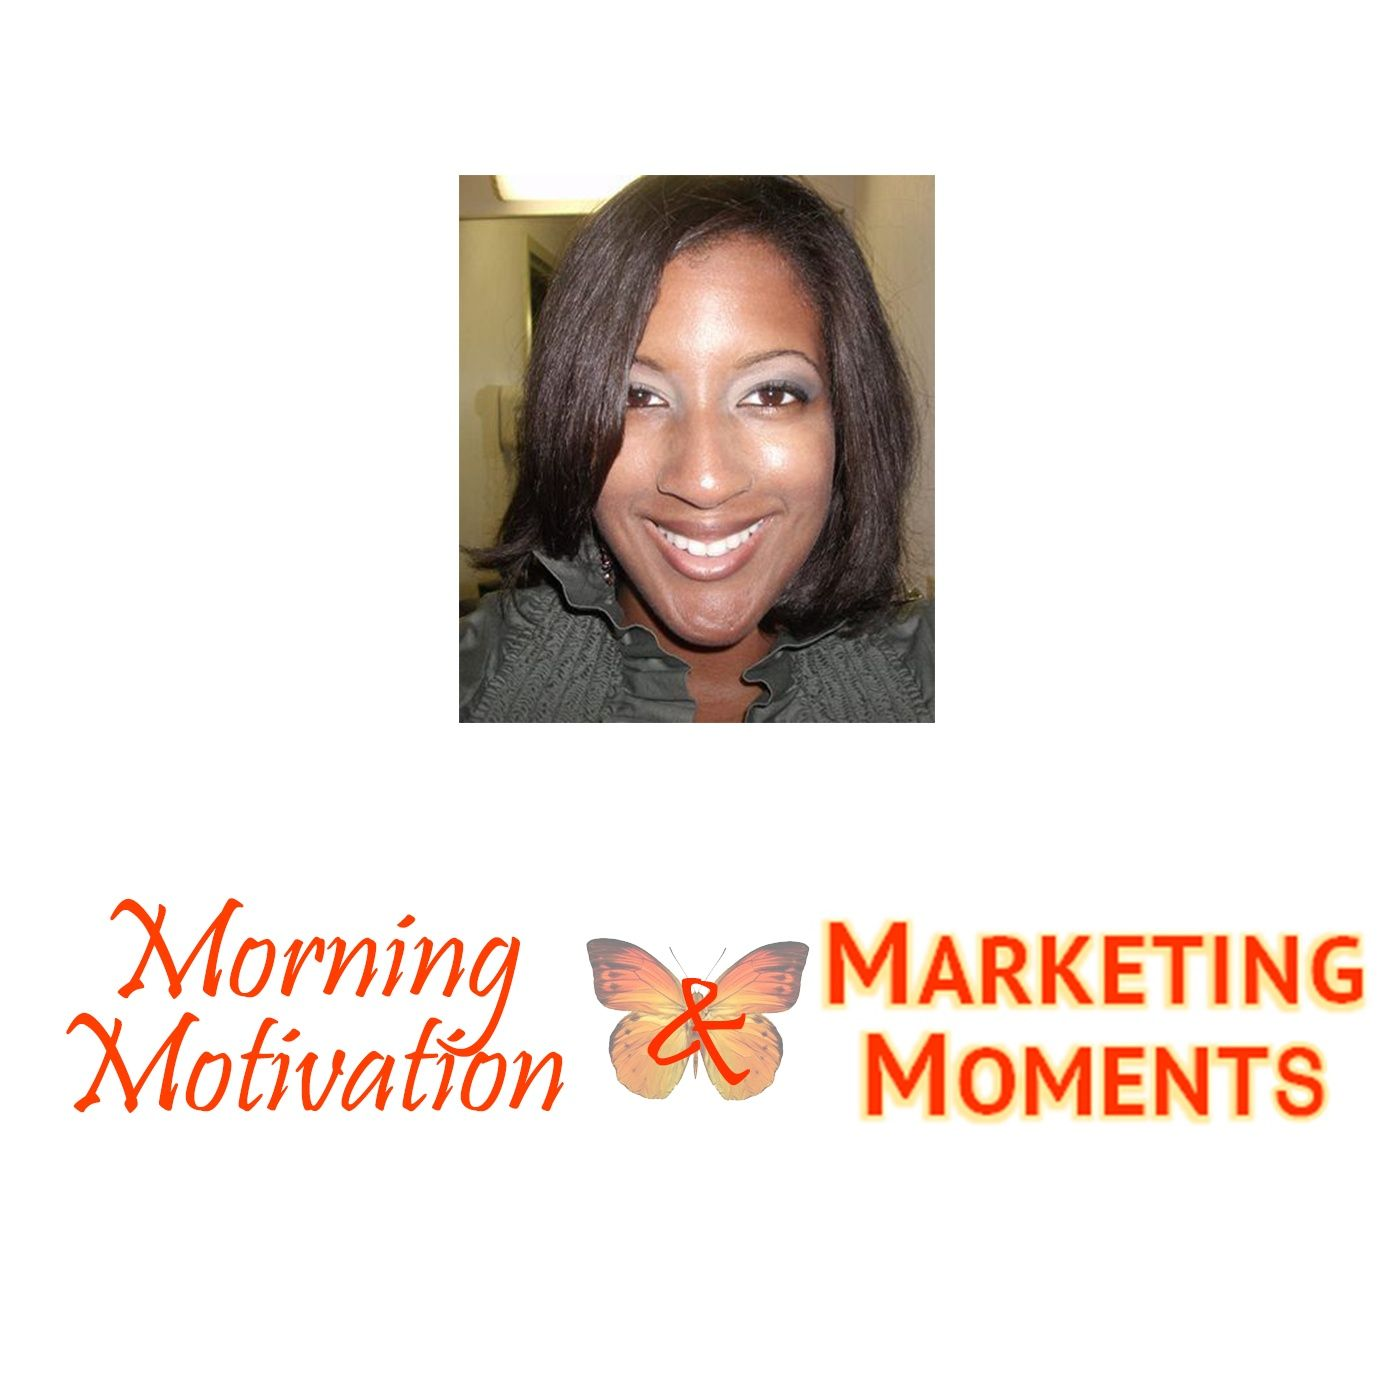 Morning Motivation & Marketing Moments